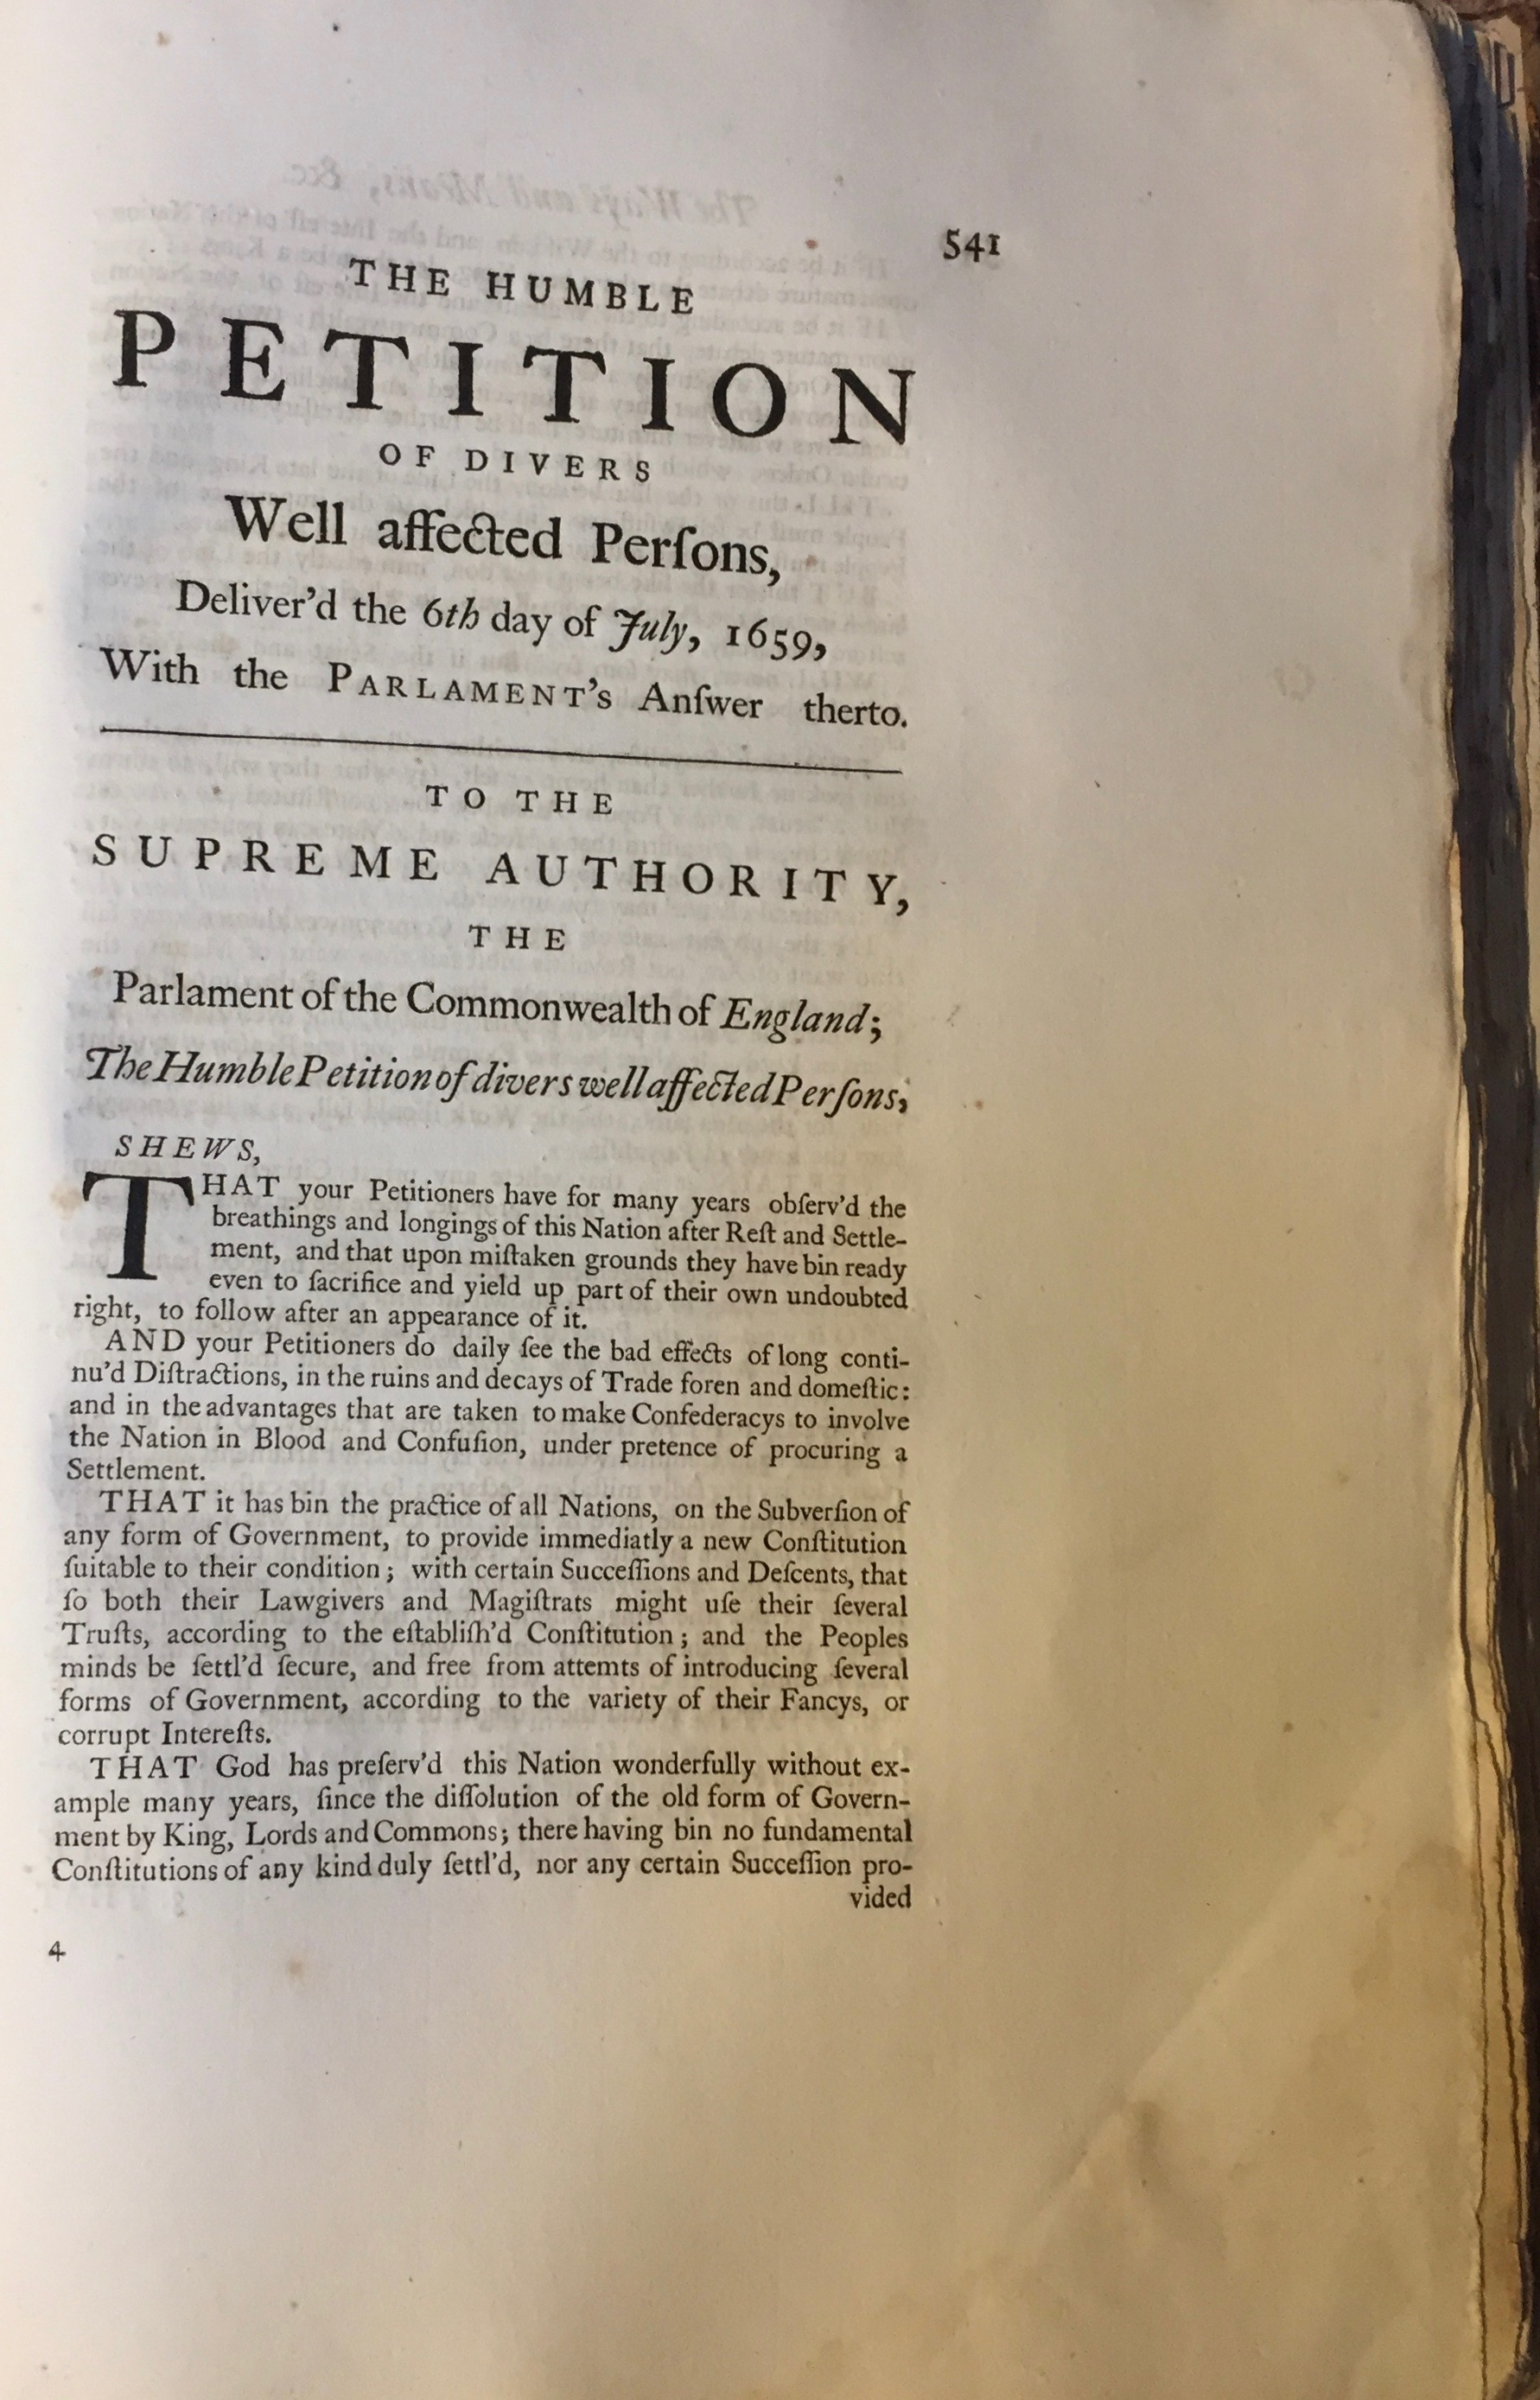 'The Humble Petition of Divers Well Affected Persons',  The Oceana and Other Works of James Harrington,  ed. John Toland (London, 1737). Private copy.